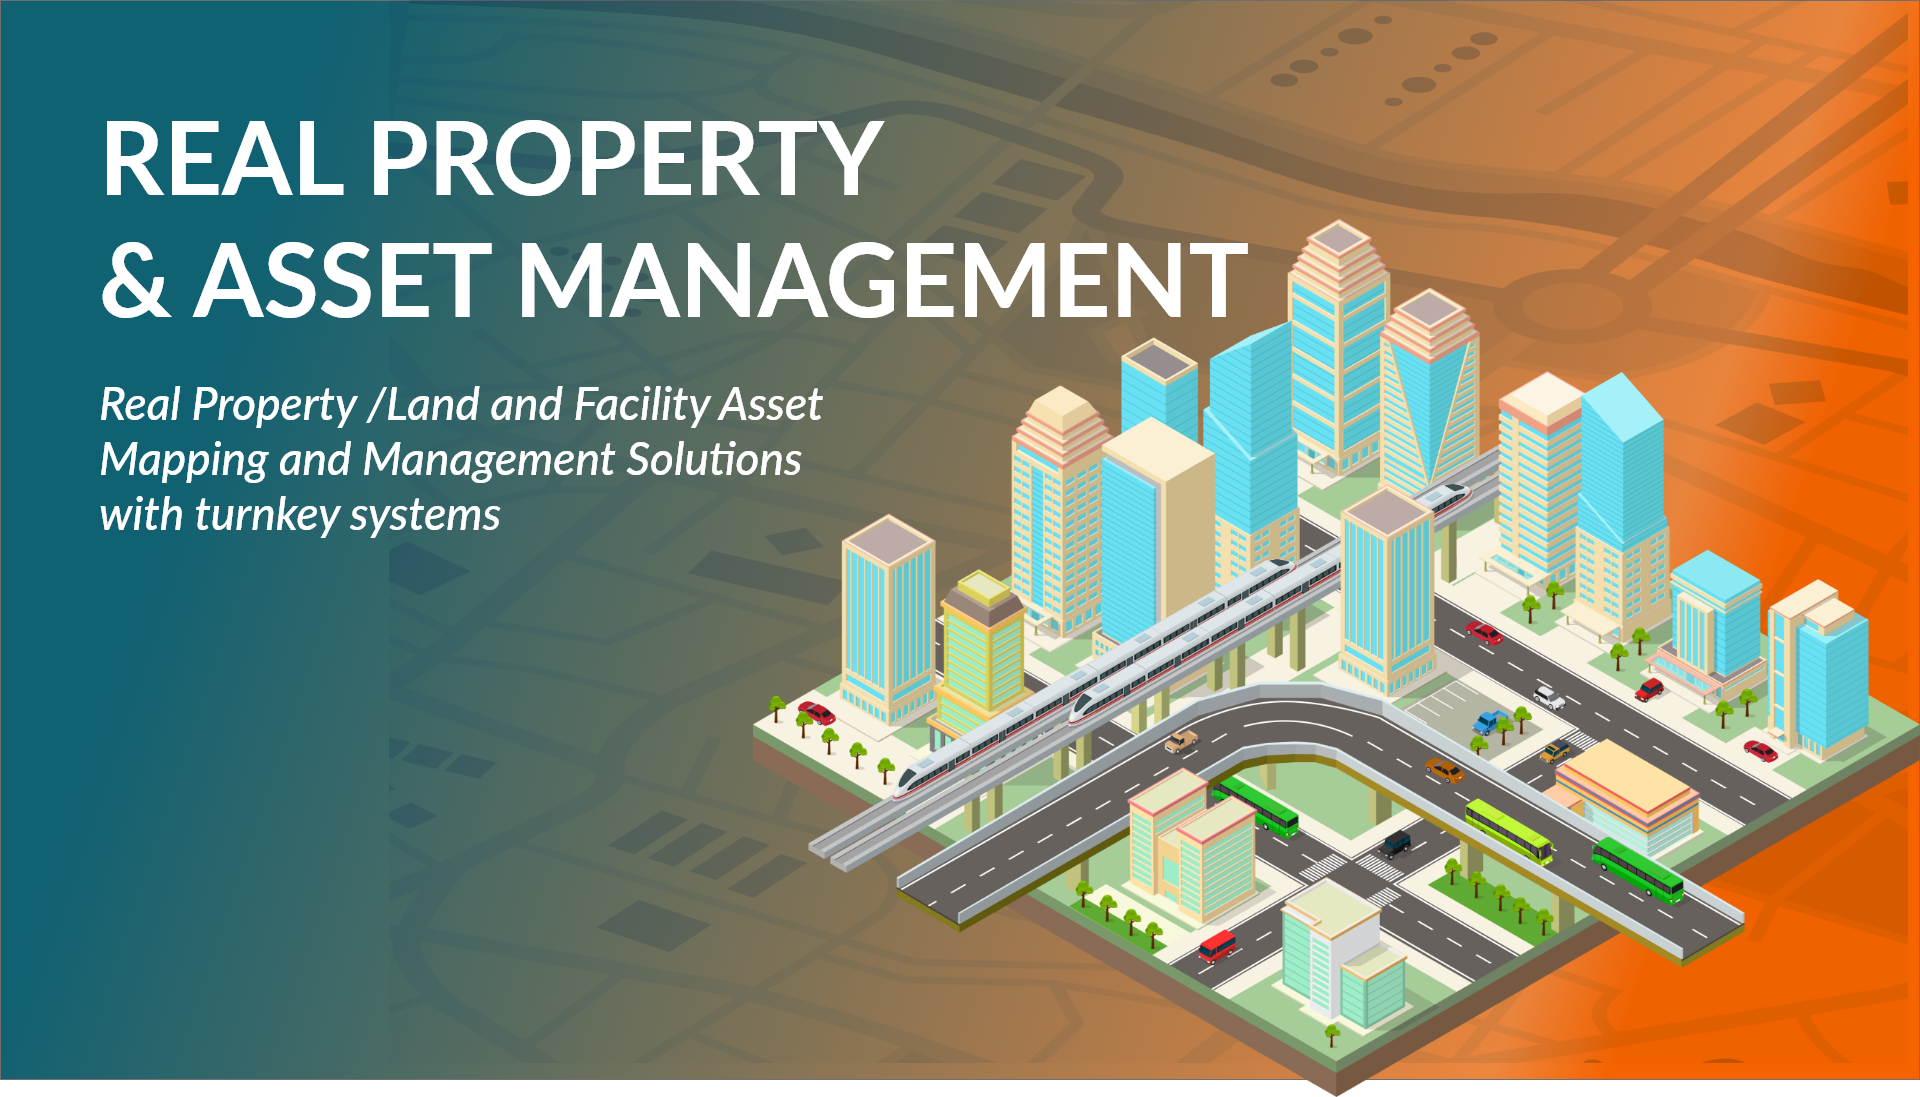 Real Property and Asset Management Mapping Solutions